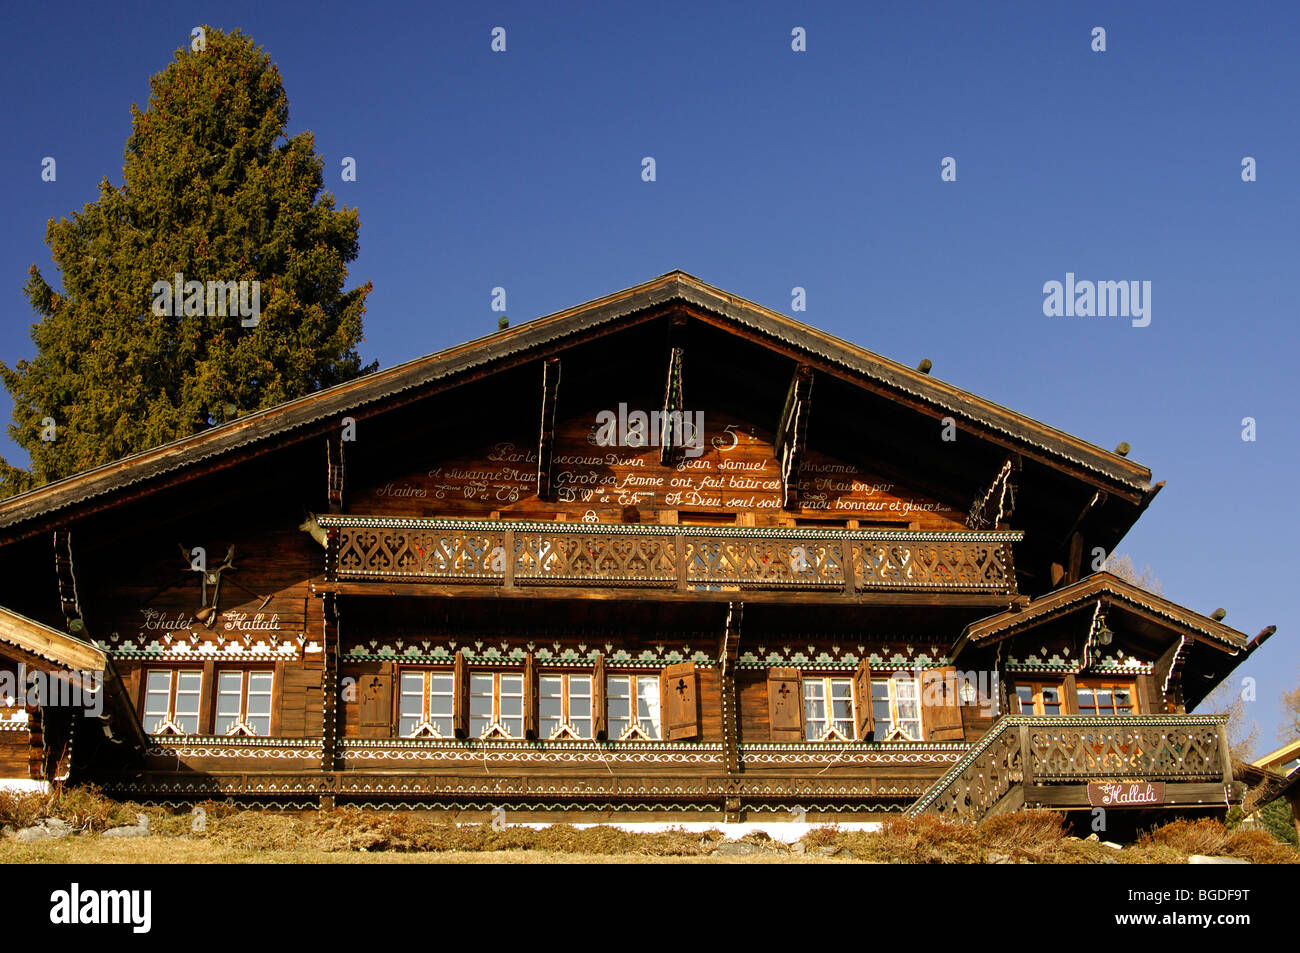 traditional swiss chalet built in 1825 barbeleuse gryon stock photo royalty free image. Black Bedroom Furniture Sets. Home Design Ideas